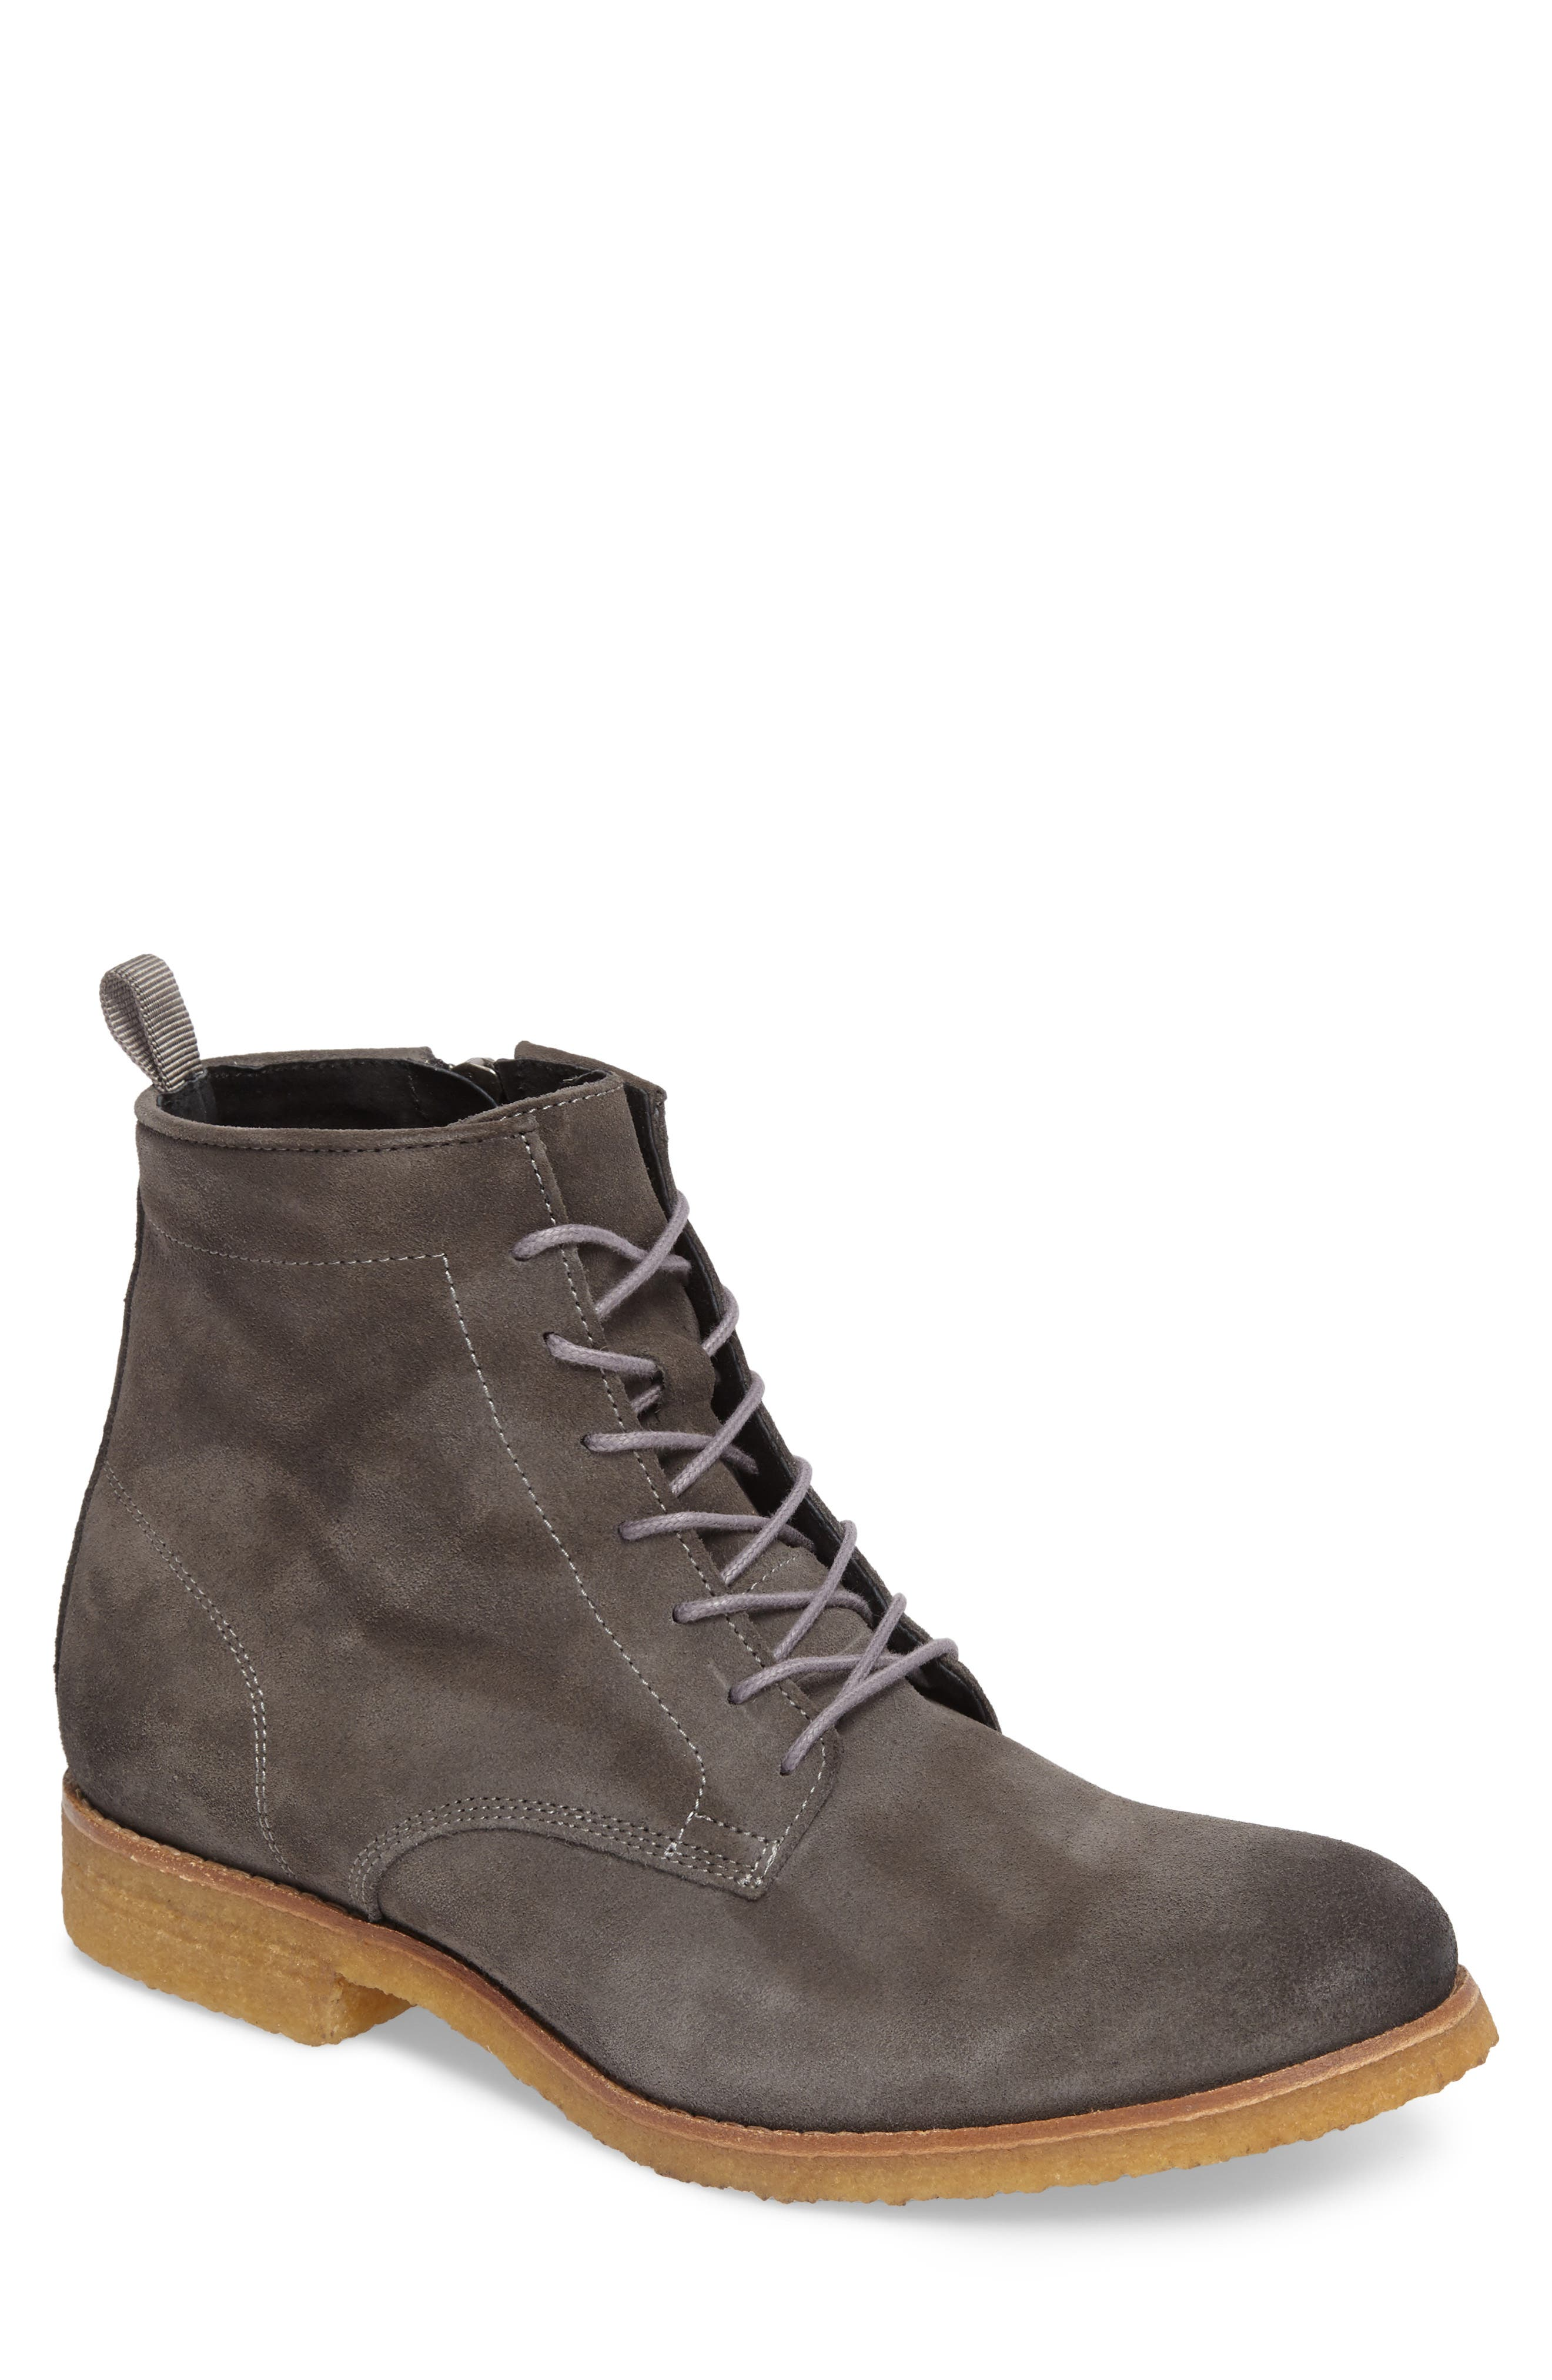 SUPPLY LAB Jonah Plain Toe Boot in Grey Suede